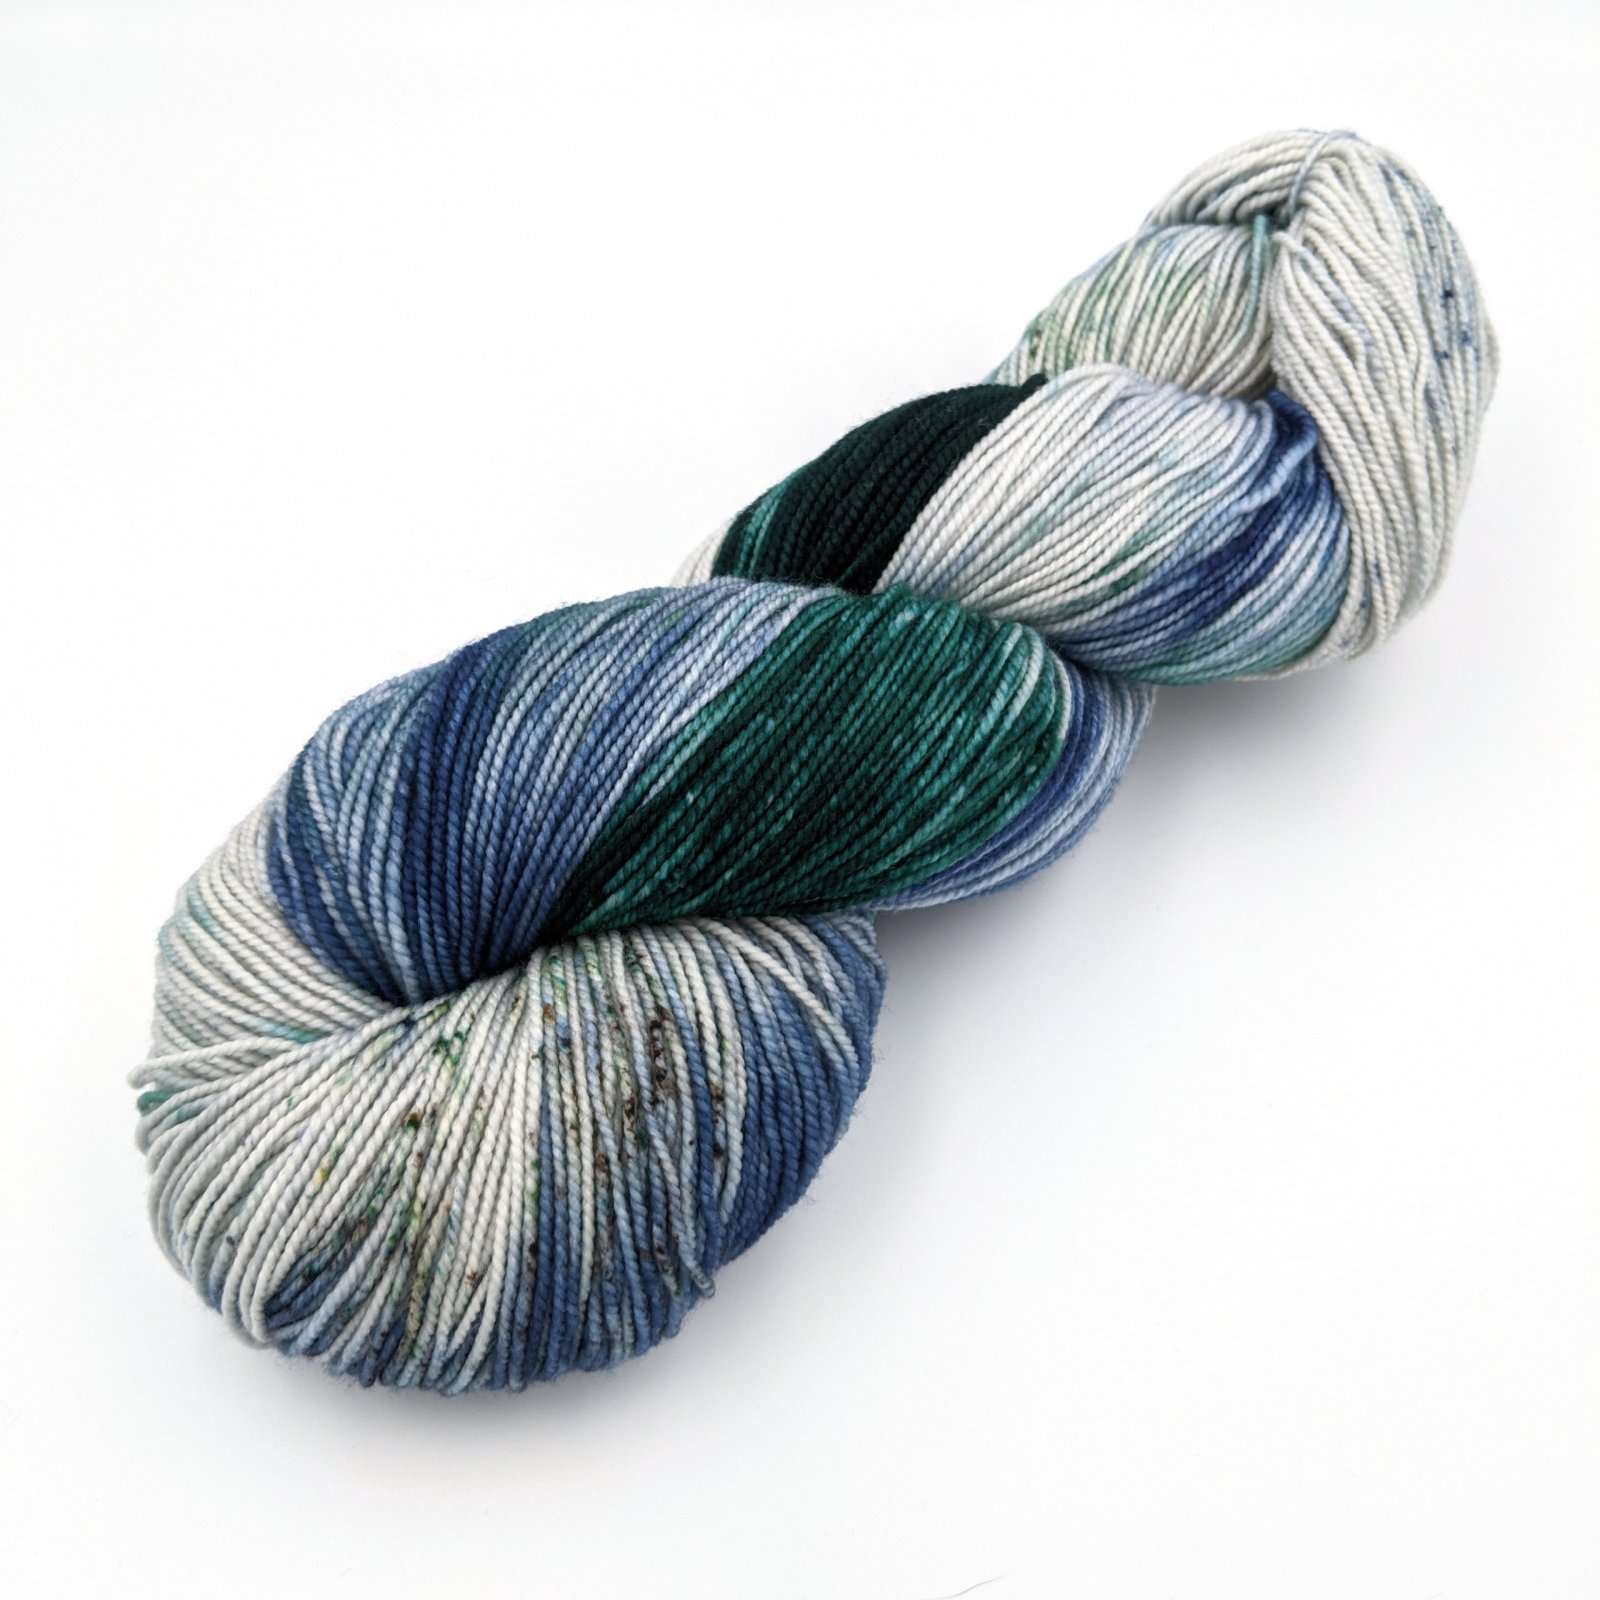 The Fiber Seed Yarn - Sprout Sock - Color of the Month Club - April 2020 - Happy Little Trees